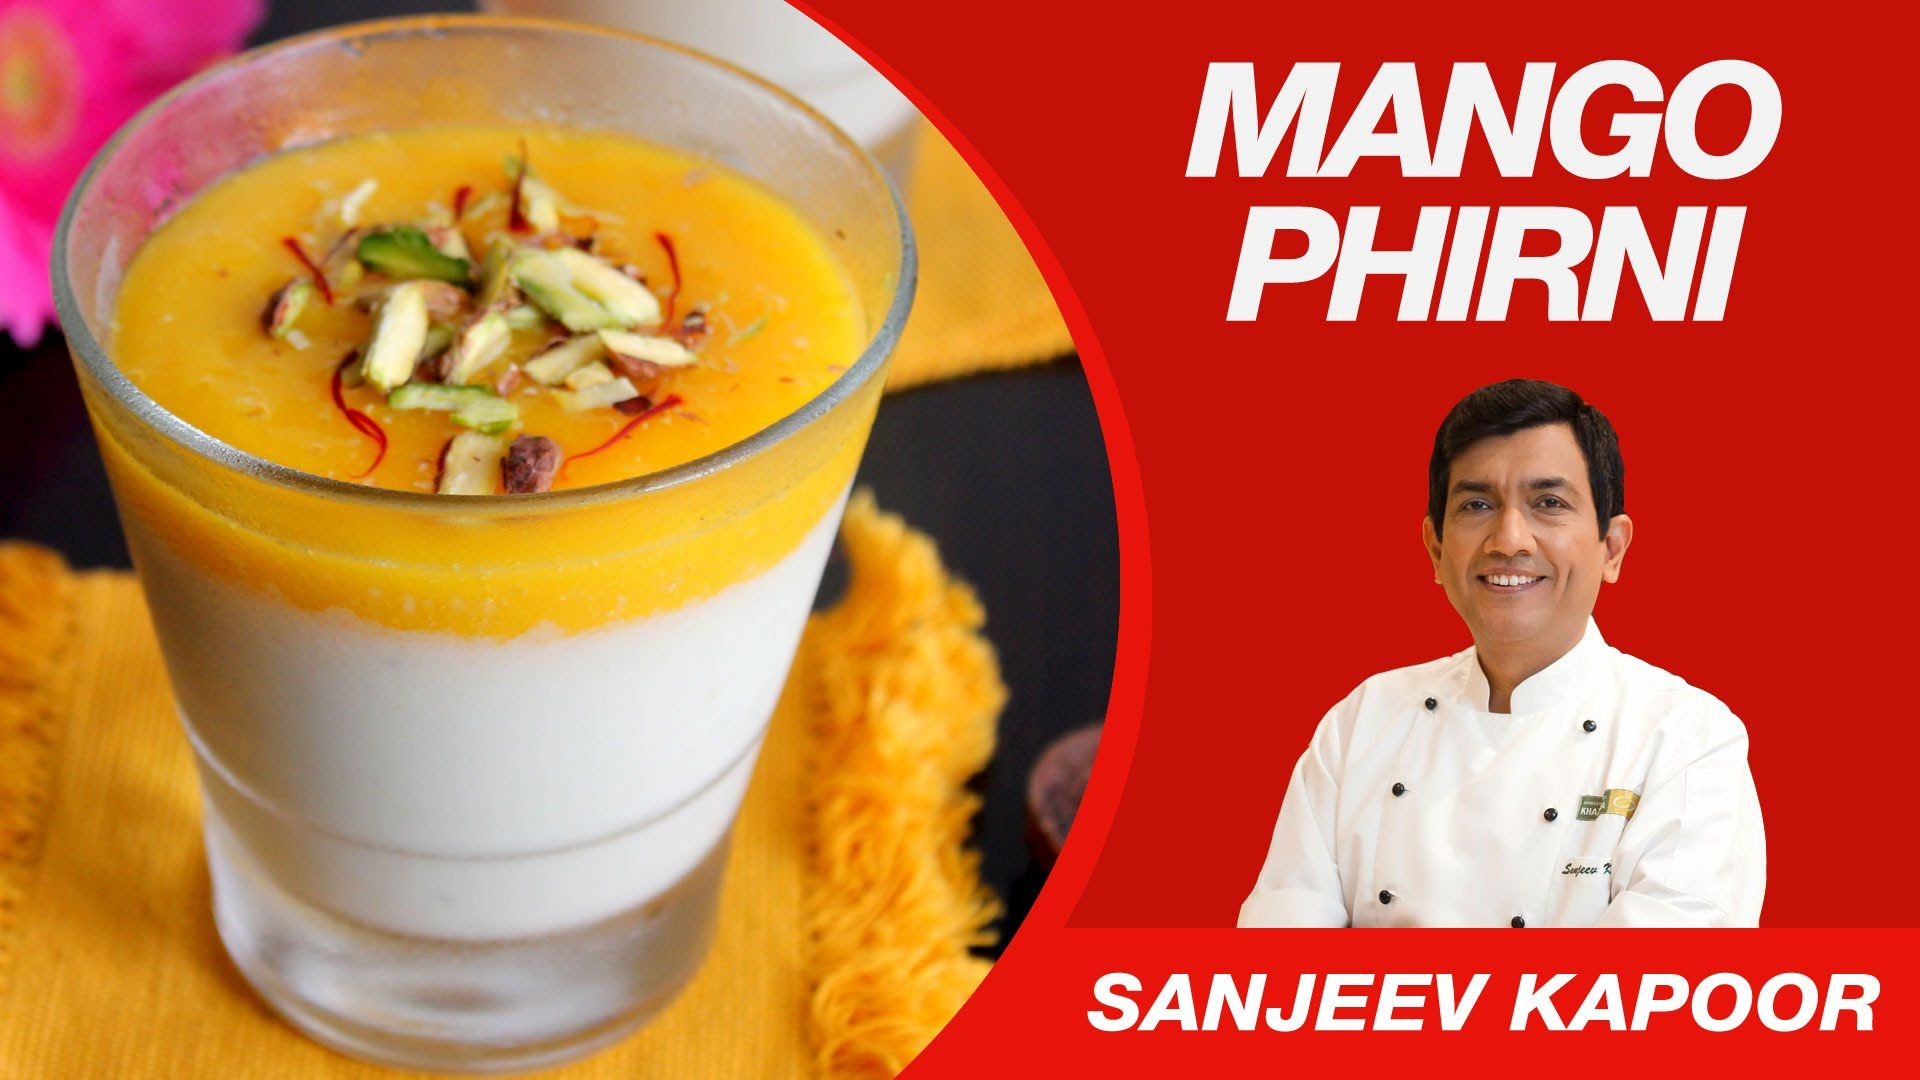 Mango phirni dessert recipe by sanjeev kapoor north indian mango phirni dessert recipe by sanjeev kapoor north indian delicacy forumfinder Choice Image